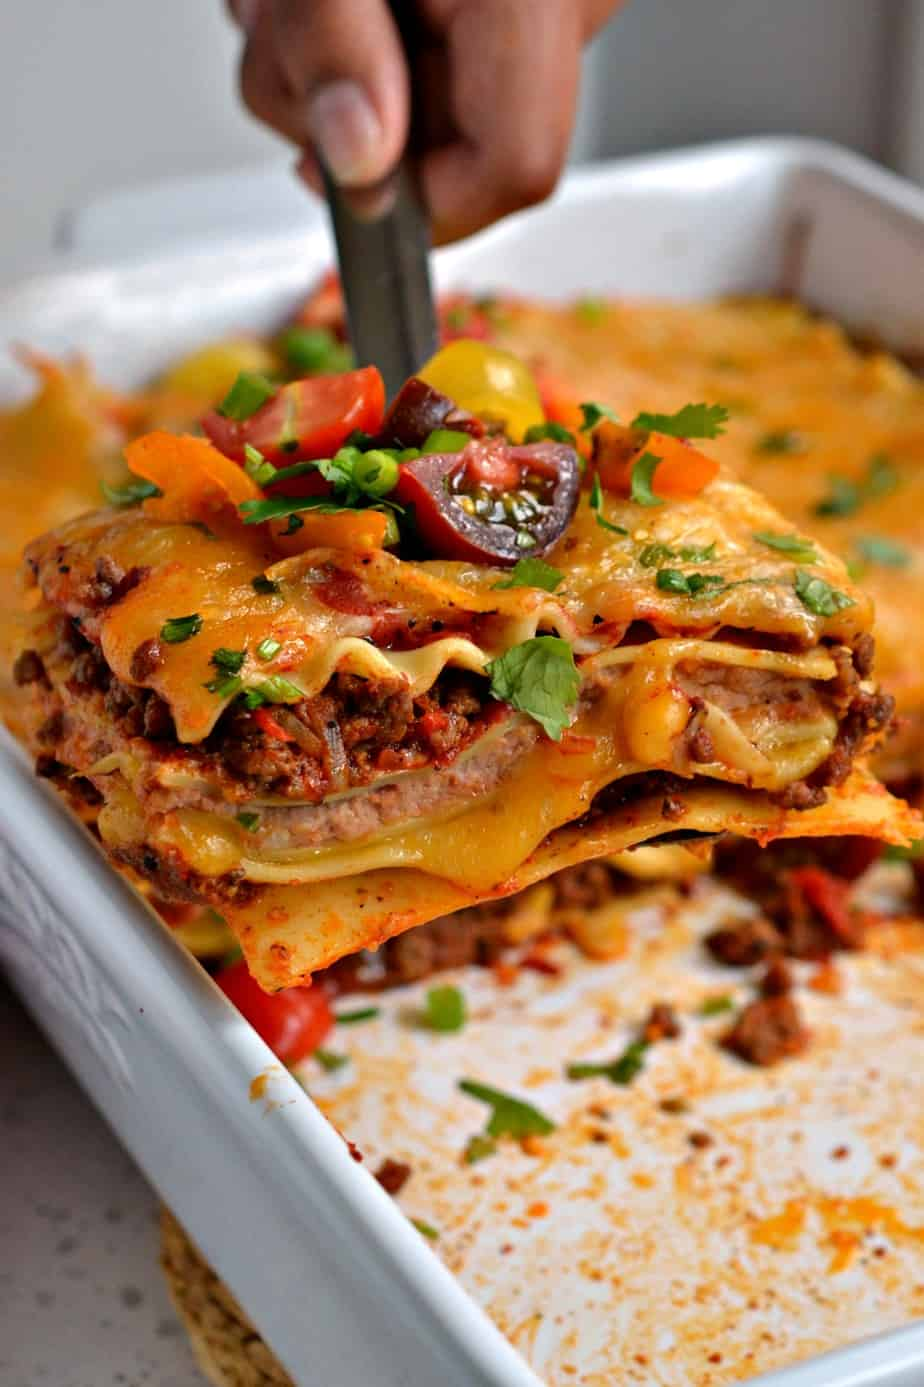 Mexican Lasagna is a hearty meal with an abundance of flavors from taco seasoned ground beef, onions, and refried beans.